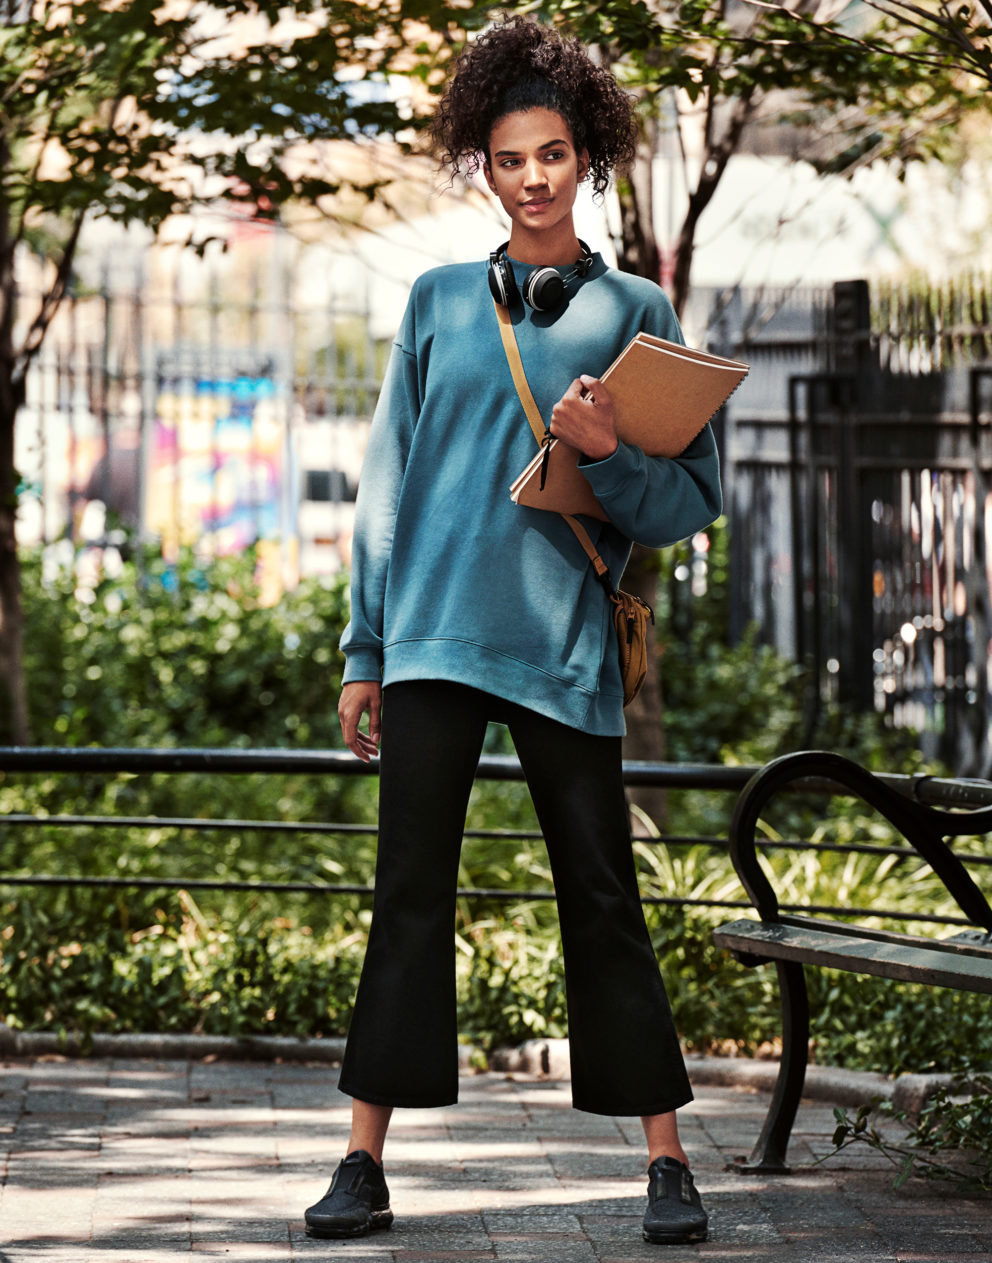 190712 0110 Uniqlo Back To Reality 296 By Christian Hogstedt Web